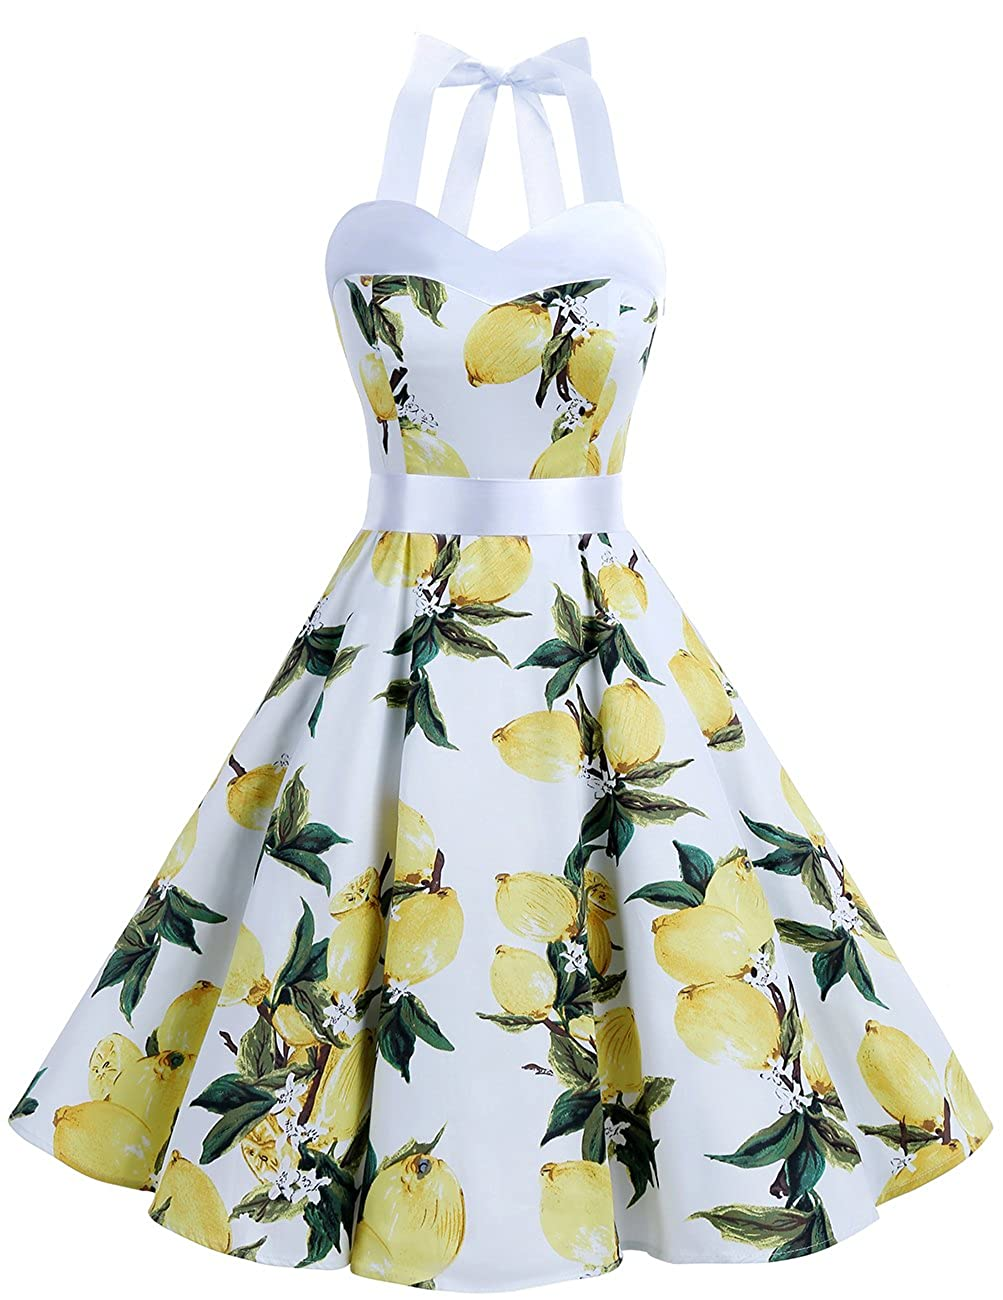 TALLA XL. Dresstells® Halter 50s Rockabilly Polka Dots Audrey Dress Retro Cocktail Dress Lemon XL